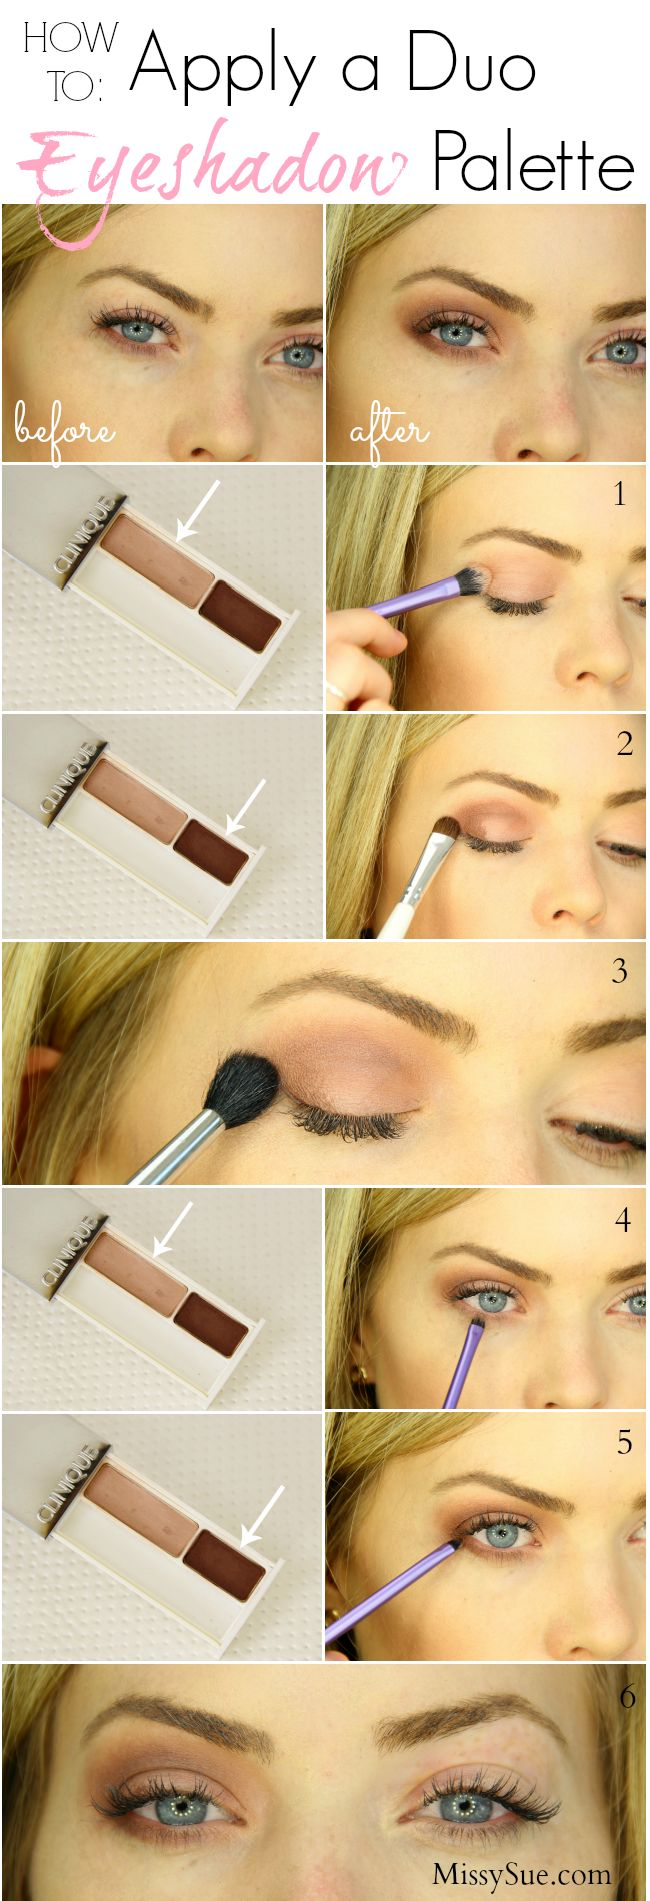 25+ Best Ideas About How To Apply On Pinterest  How To Apply Eyeshadow, Applying  Eyeshadow And Eyeshadow Step By Step